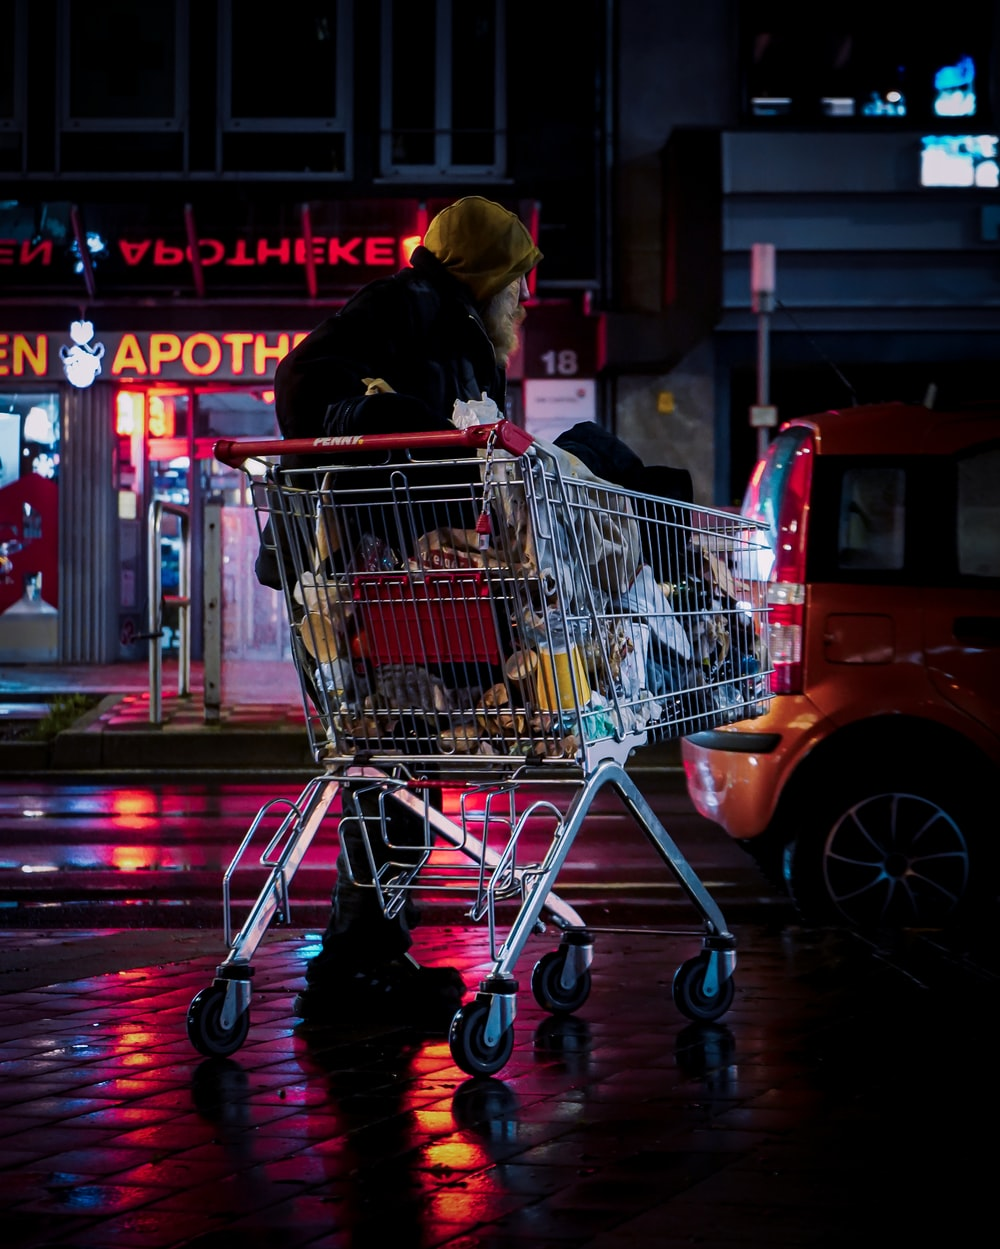 woman in black jacket riding red and silver shopping cart